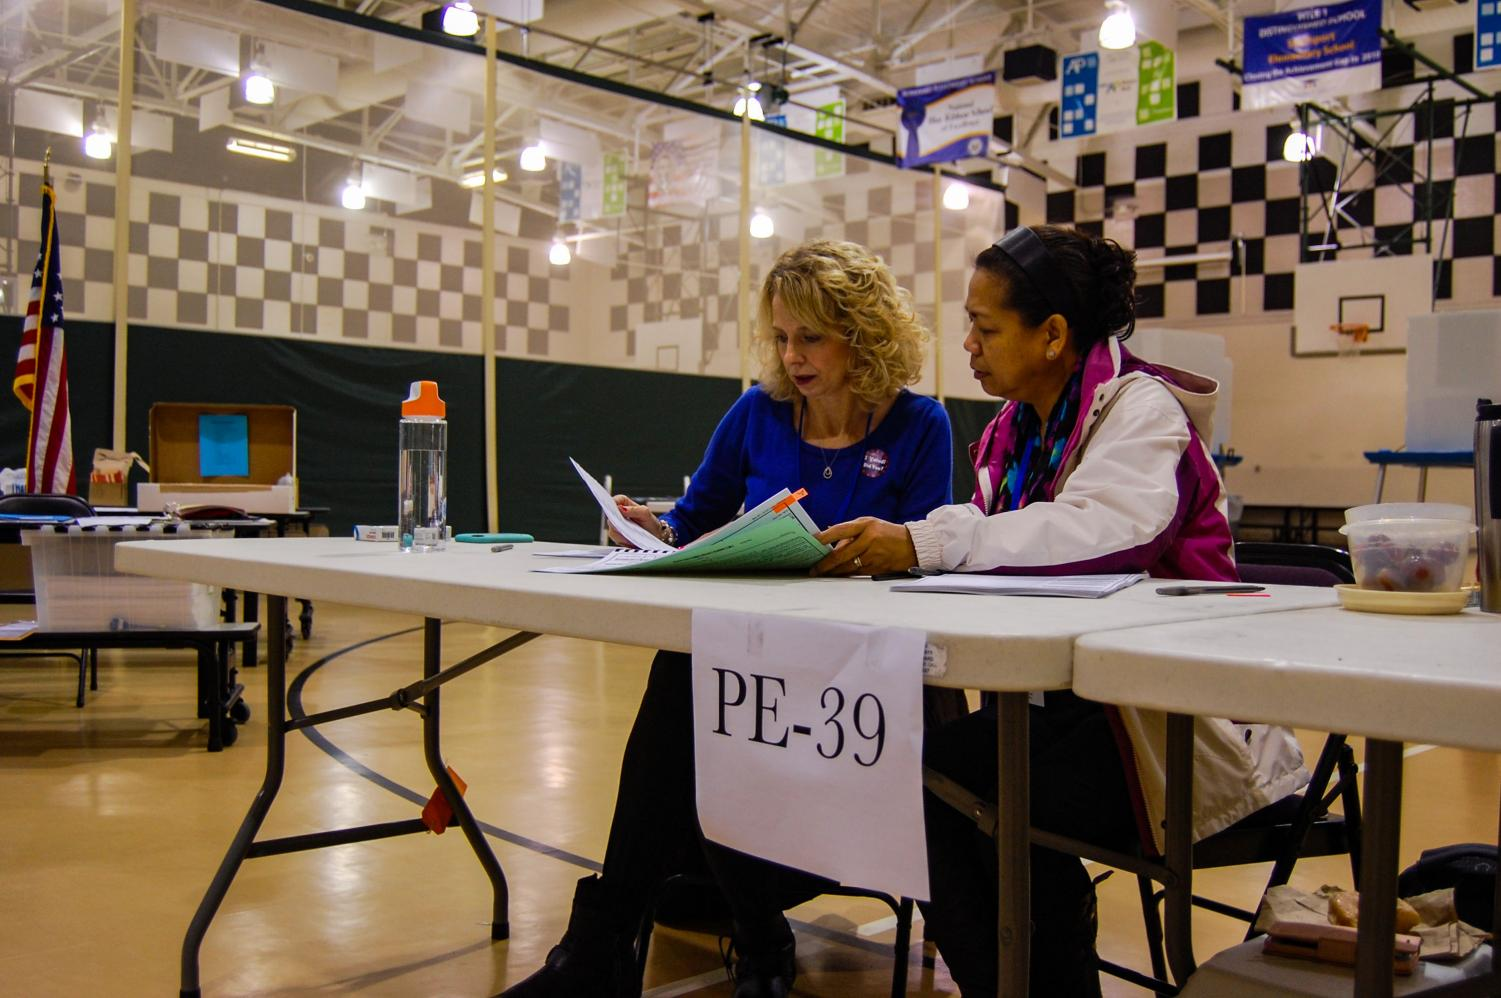 Poll workers from Precinct 39 go over paperwork and forms at the PTEC voting site on Nov. 6.